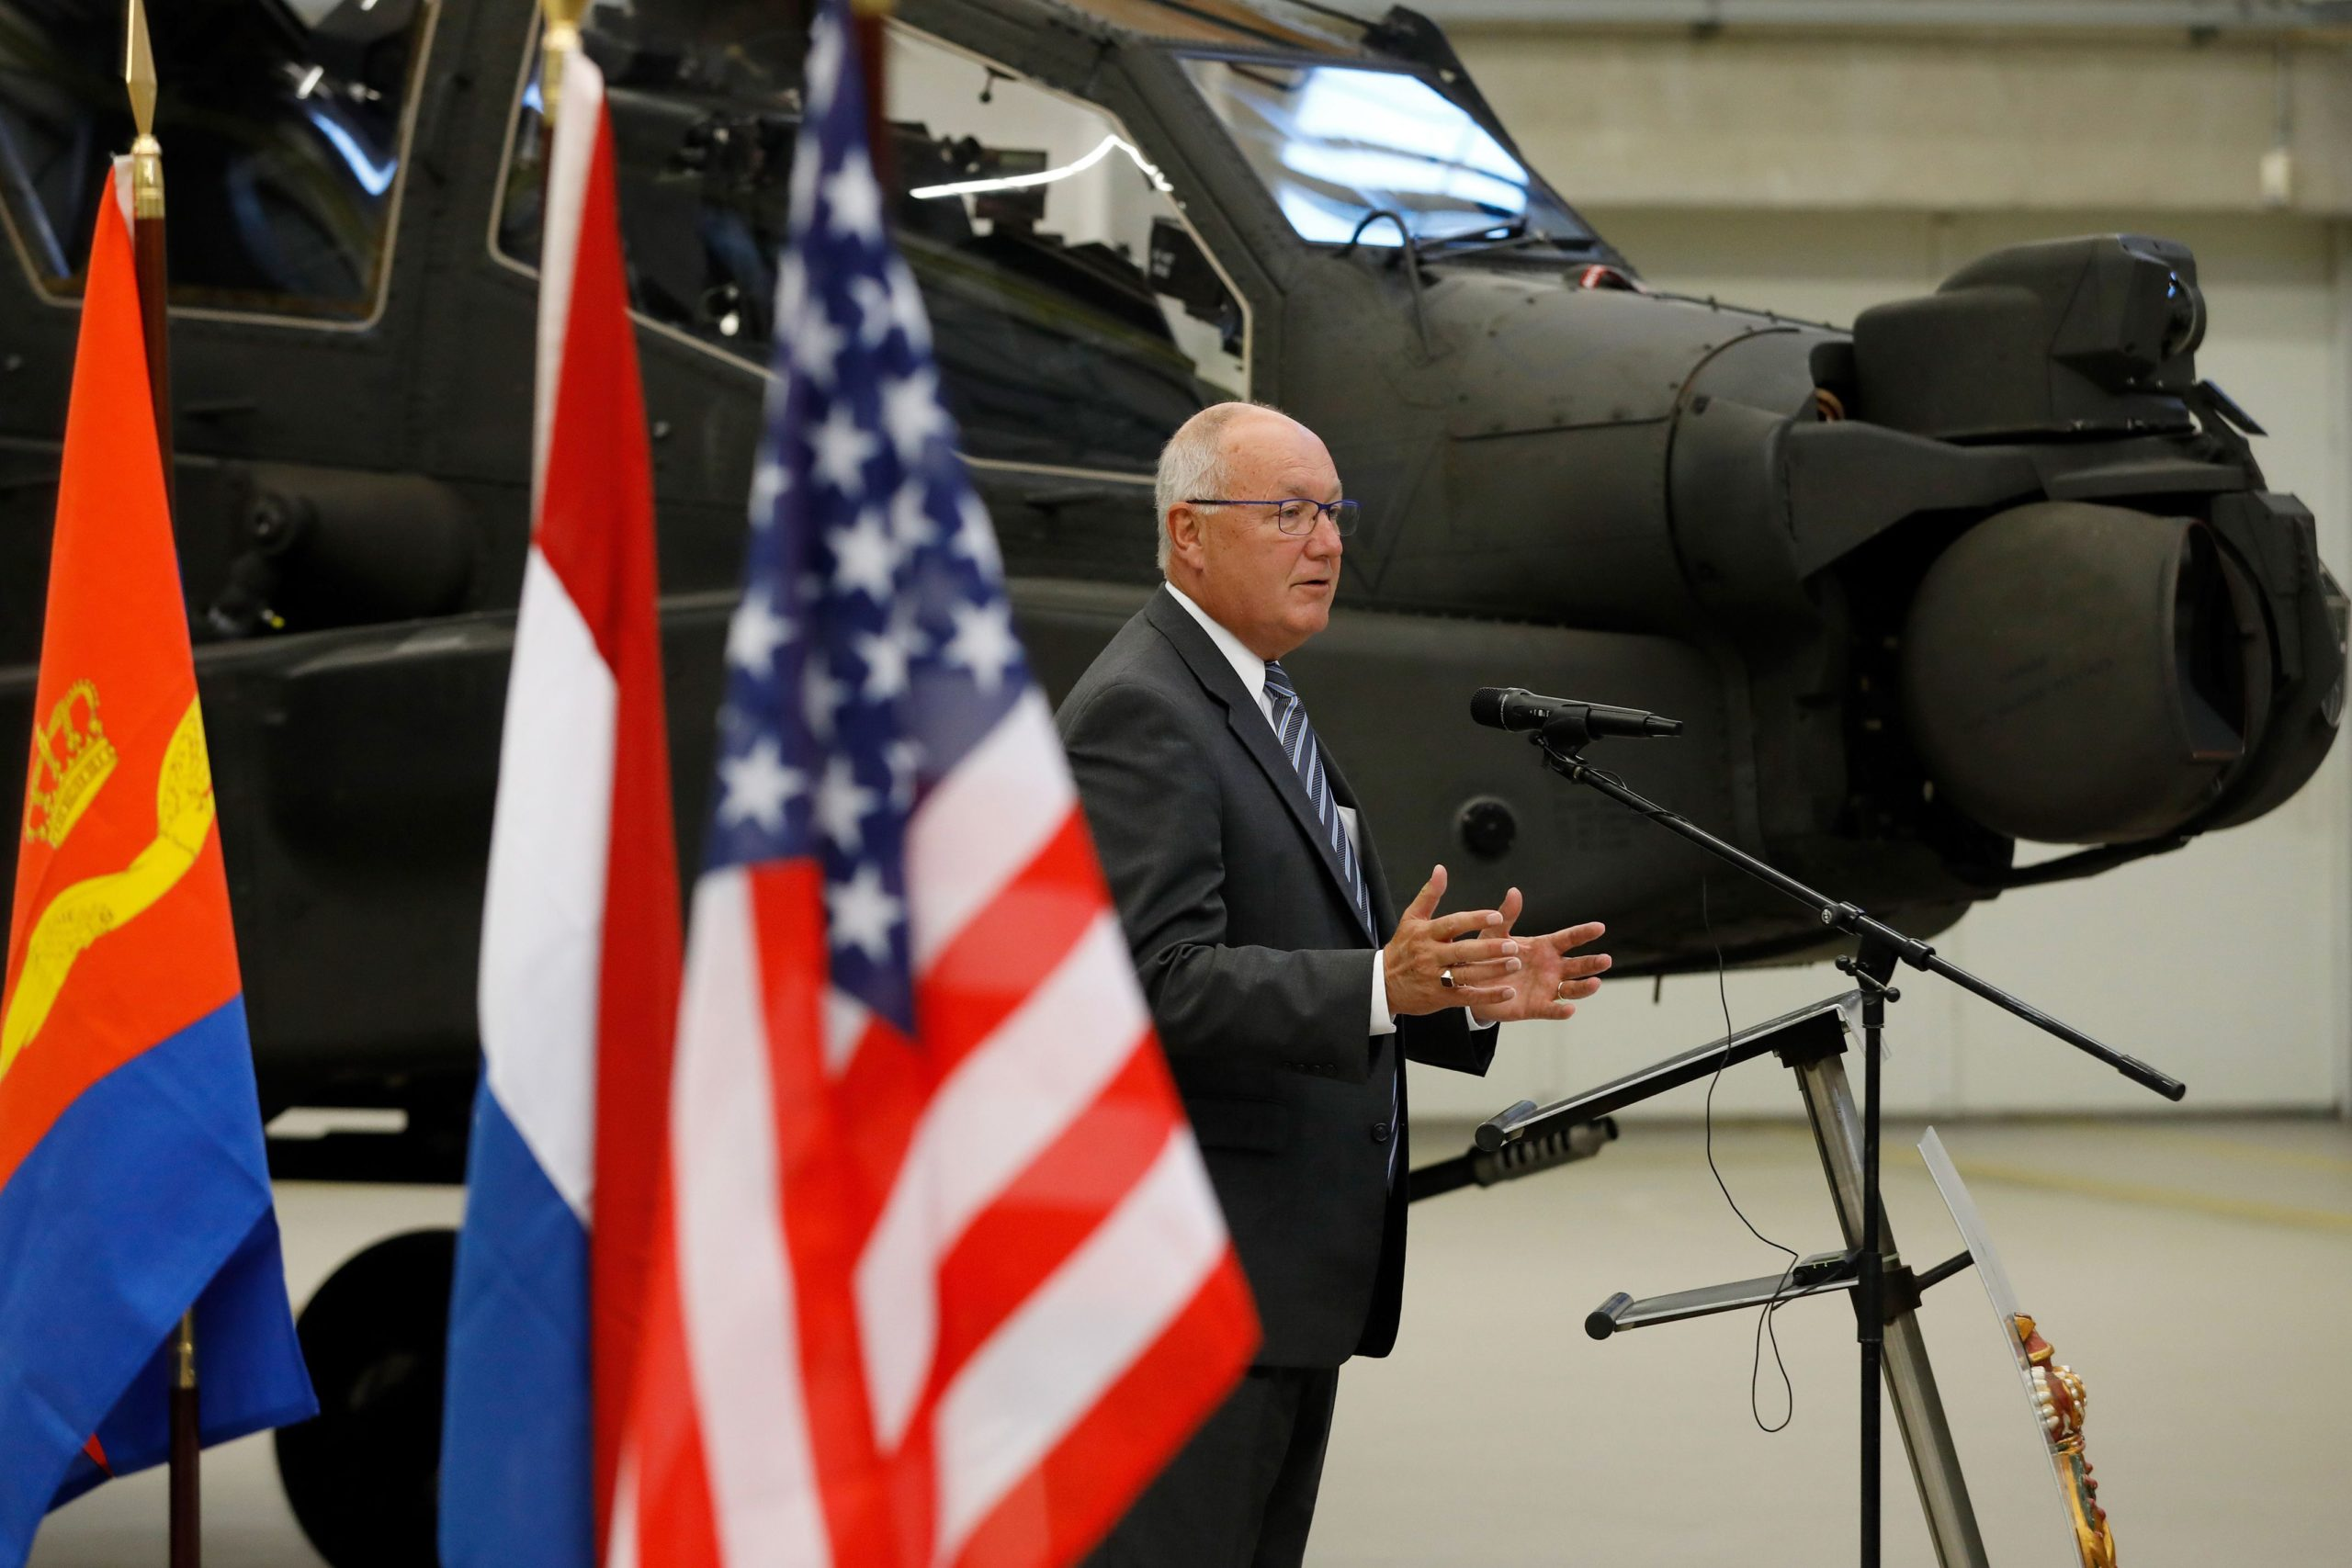 US ambassador Pete Hoekstra speaks at airbase Gilze-Rijen during a signing ceremony for the upgrate of 28 Apache helicopters of the Royal Airforce at Gilze Rijen, on September 14, 2018. (Photo by Bas CZERWINSKI / ANP / AFP) / Netherlands OUT (Photo credit should read BAS CZERWINSKI/AFP via Getty Images)